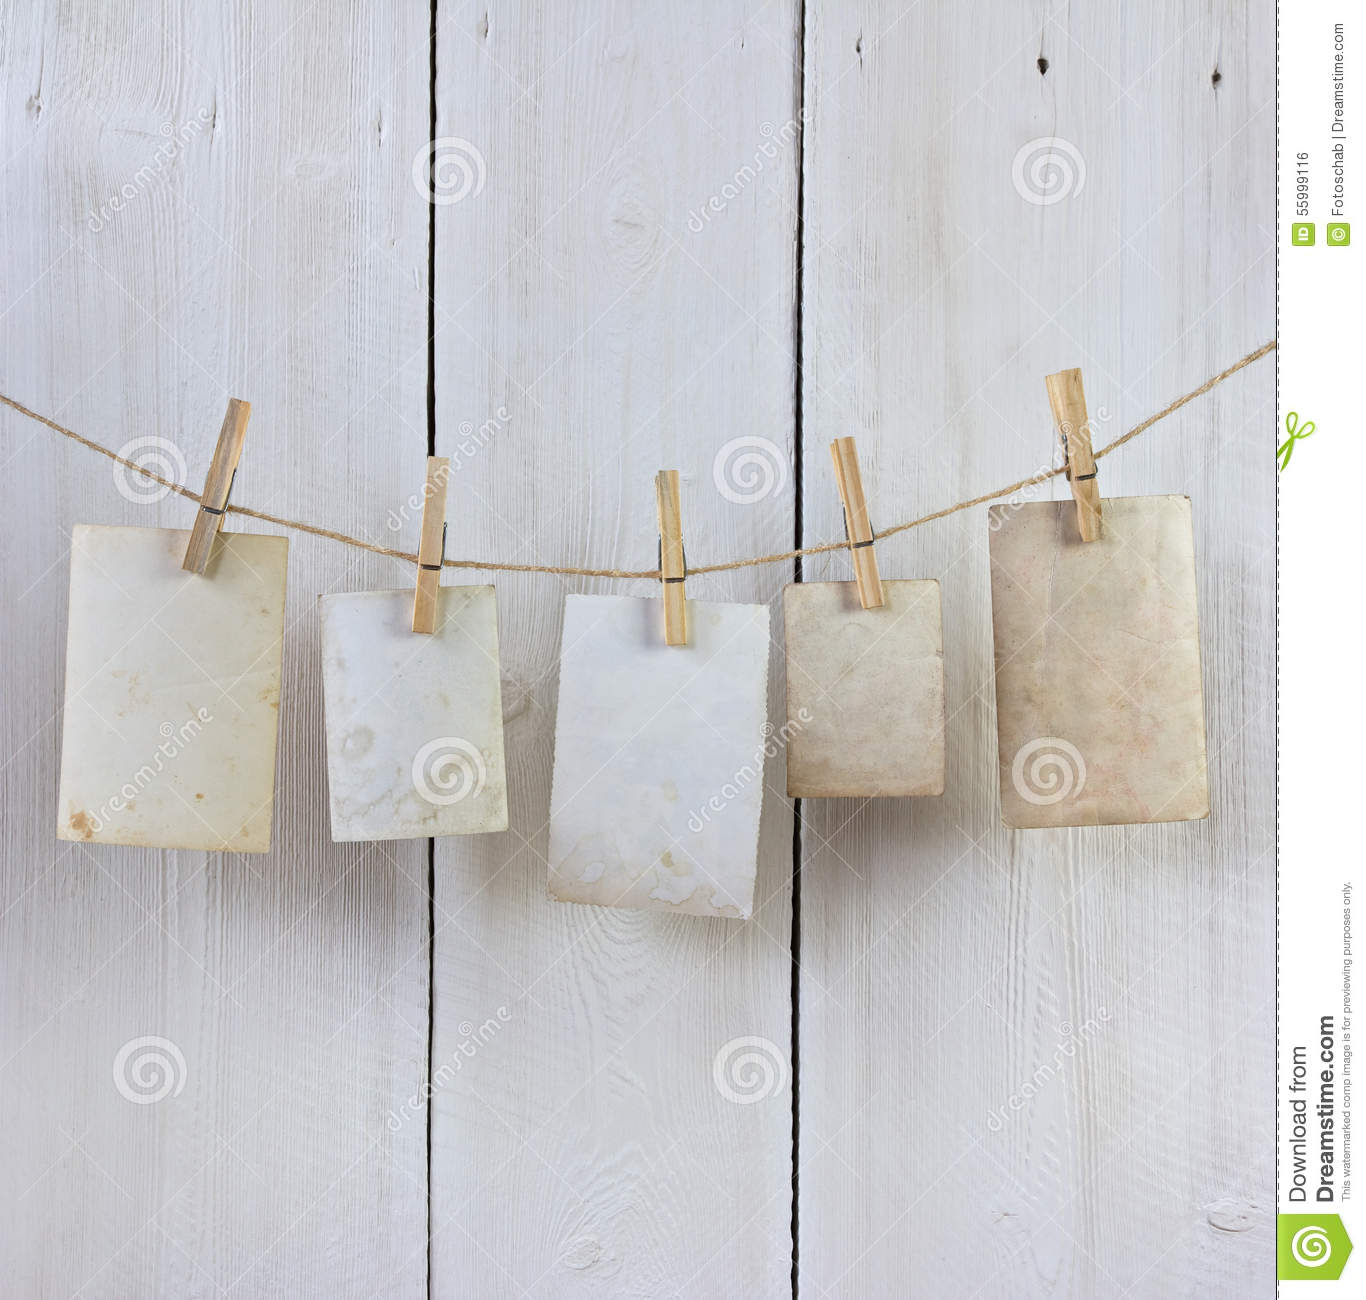 Hanging photos stock photo image 55999116 for Clothespin photo hanger